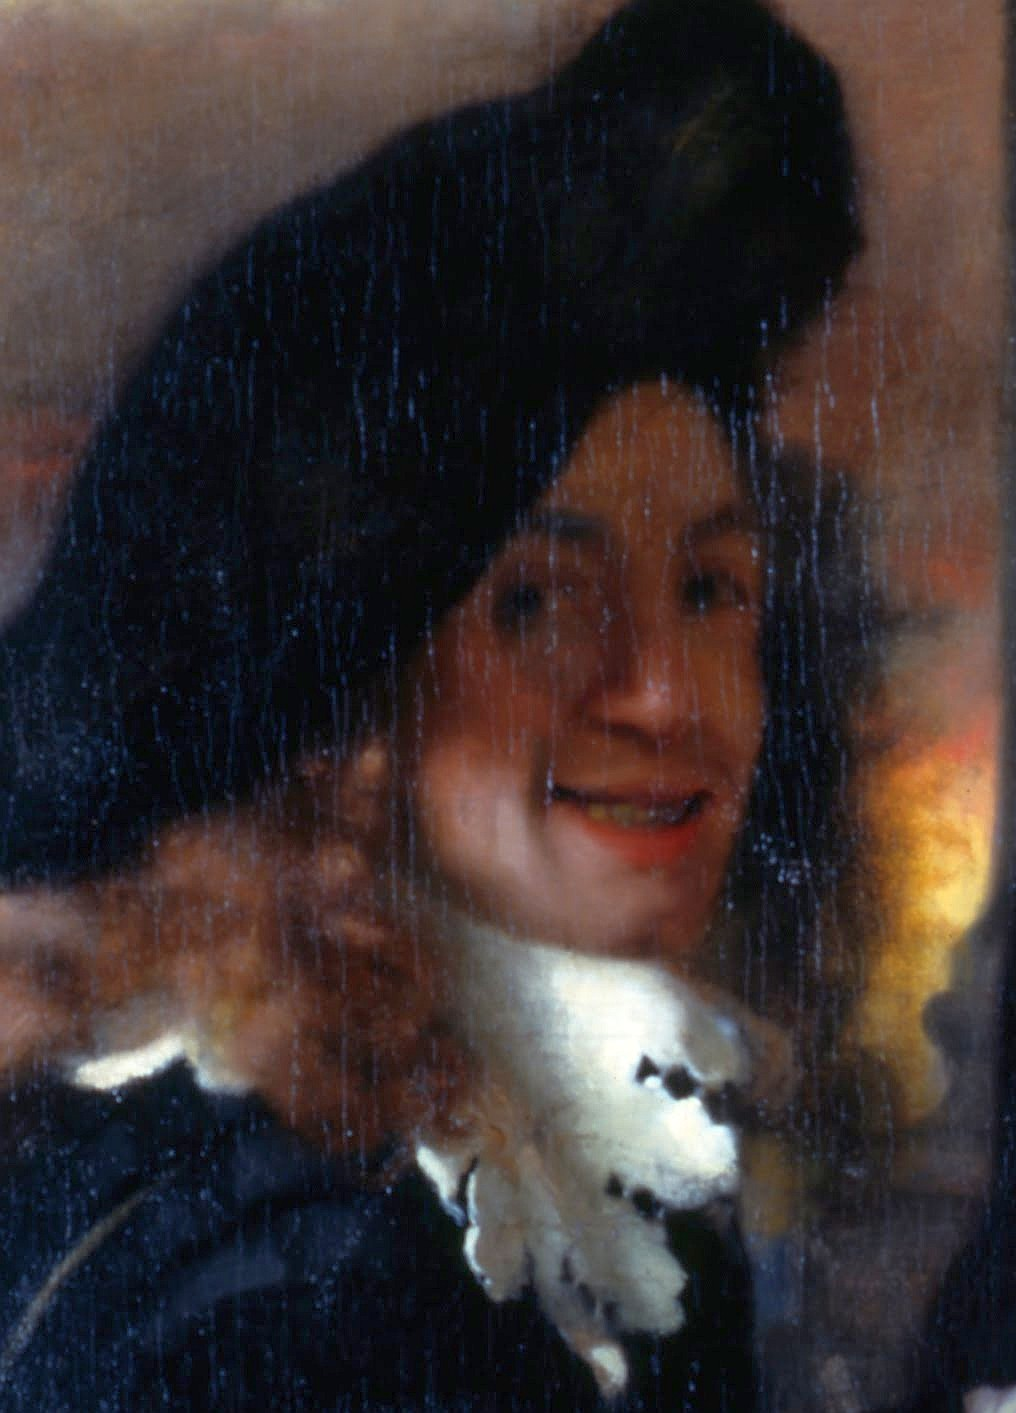 https://upload.wikimedia.org/wikipedia/commons/4/46/Cropped_version_of_Jan_Vermeer_van_Delft_002.jpg